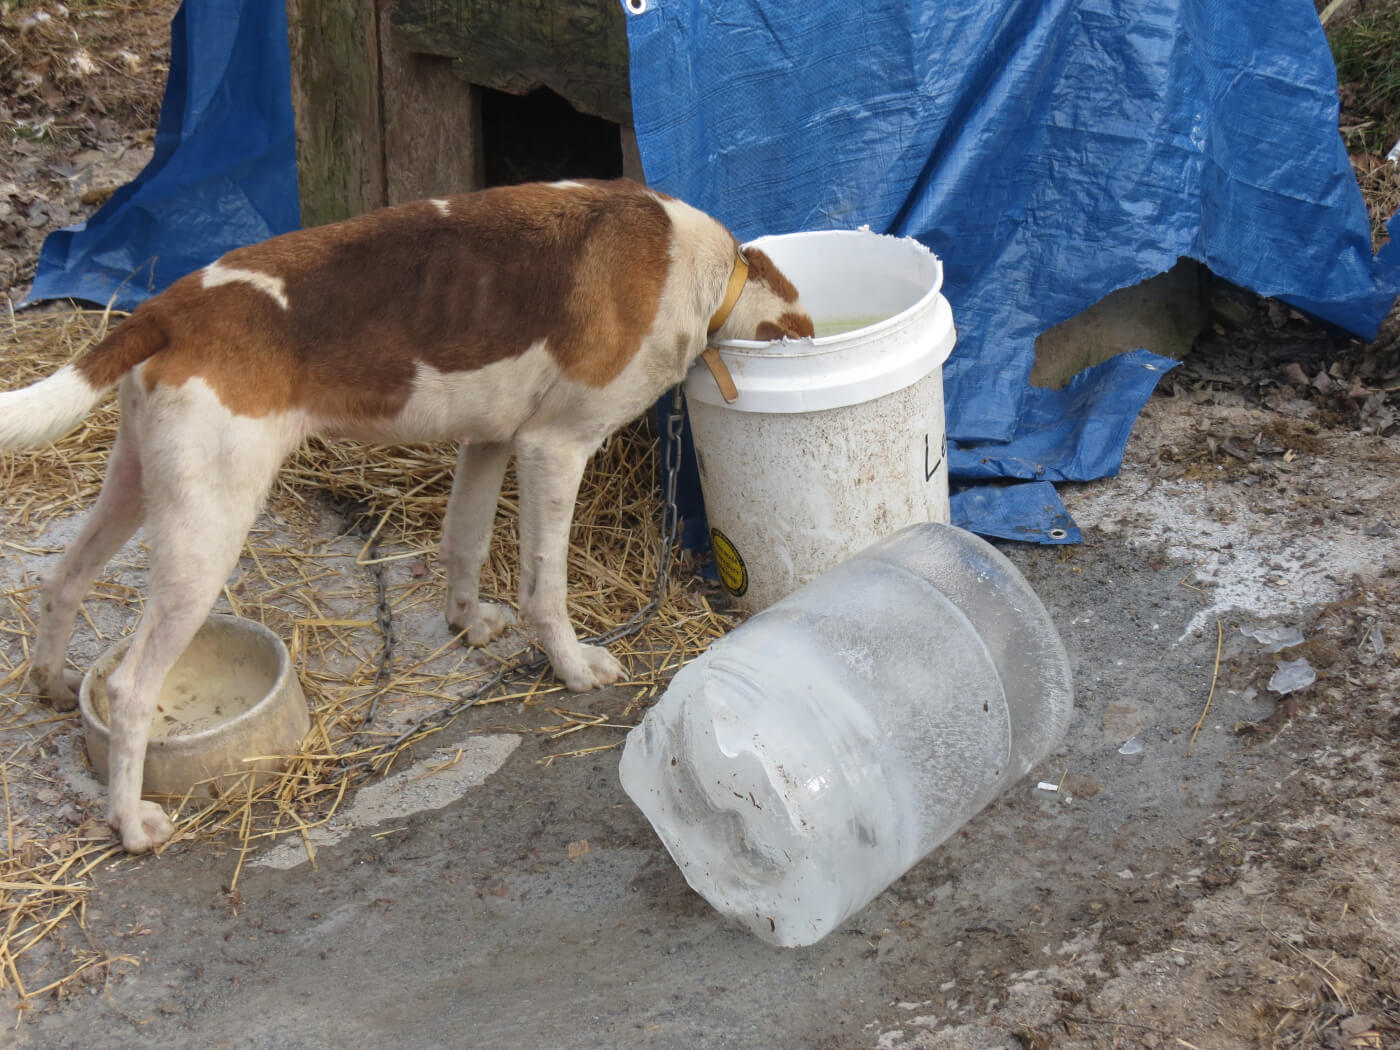 A dog's drinking water froze completely inside its bucket.